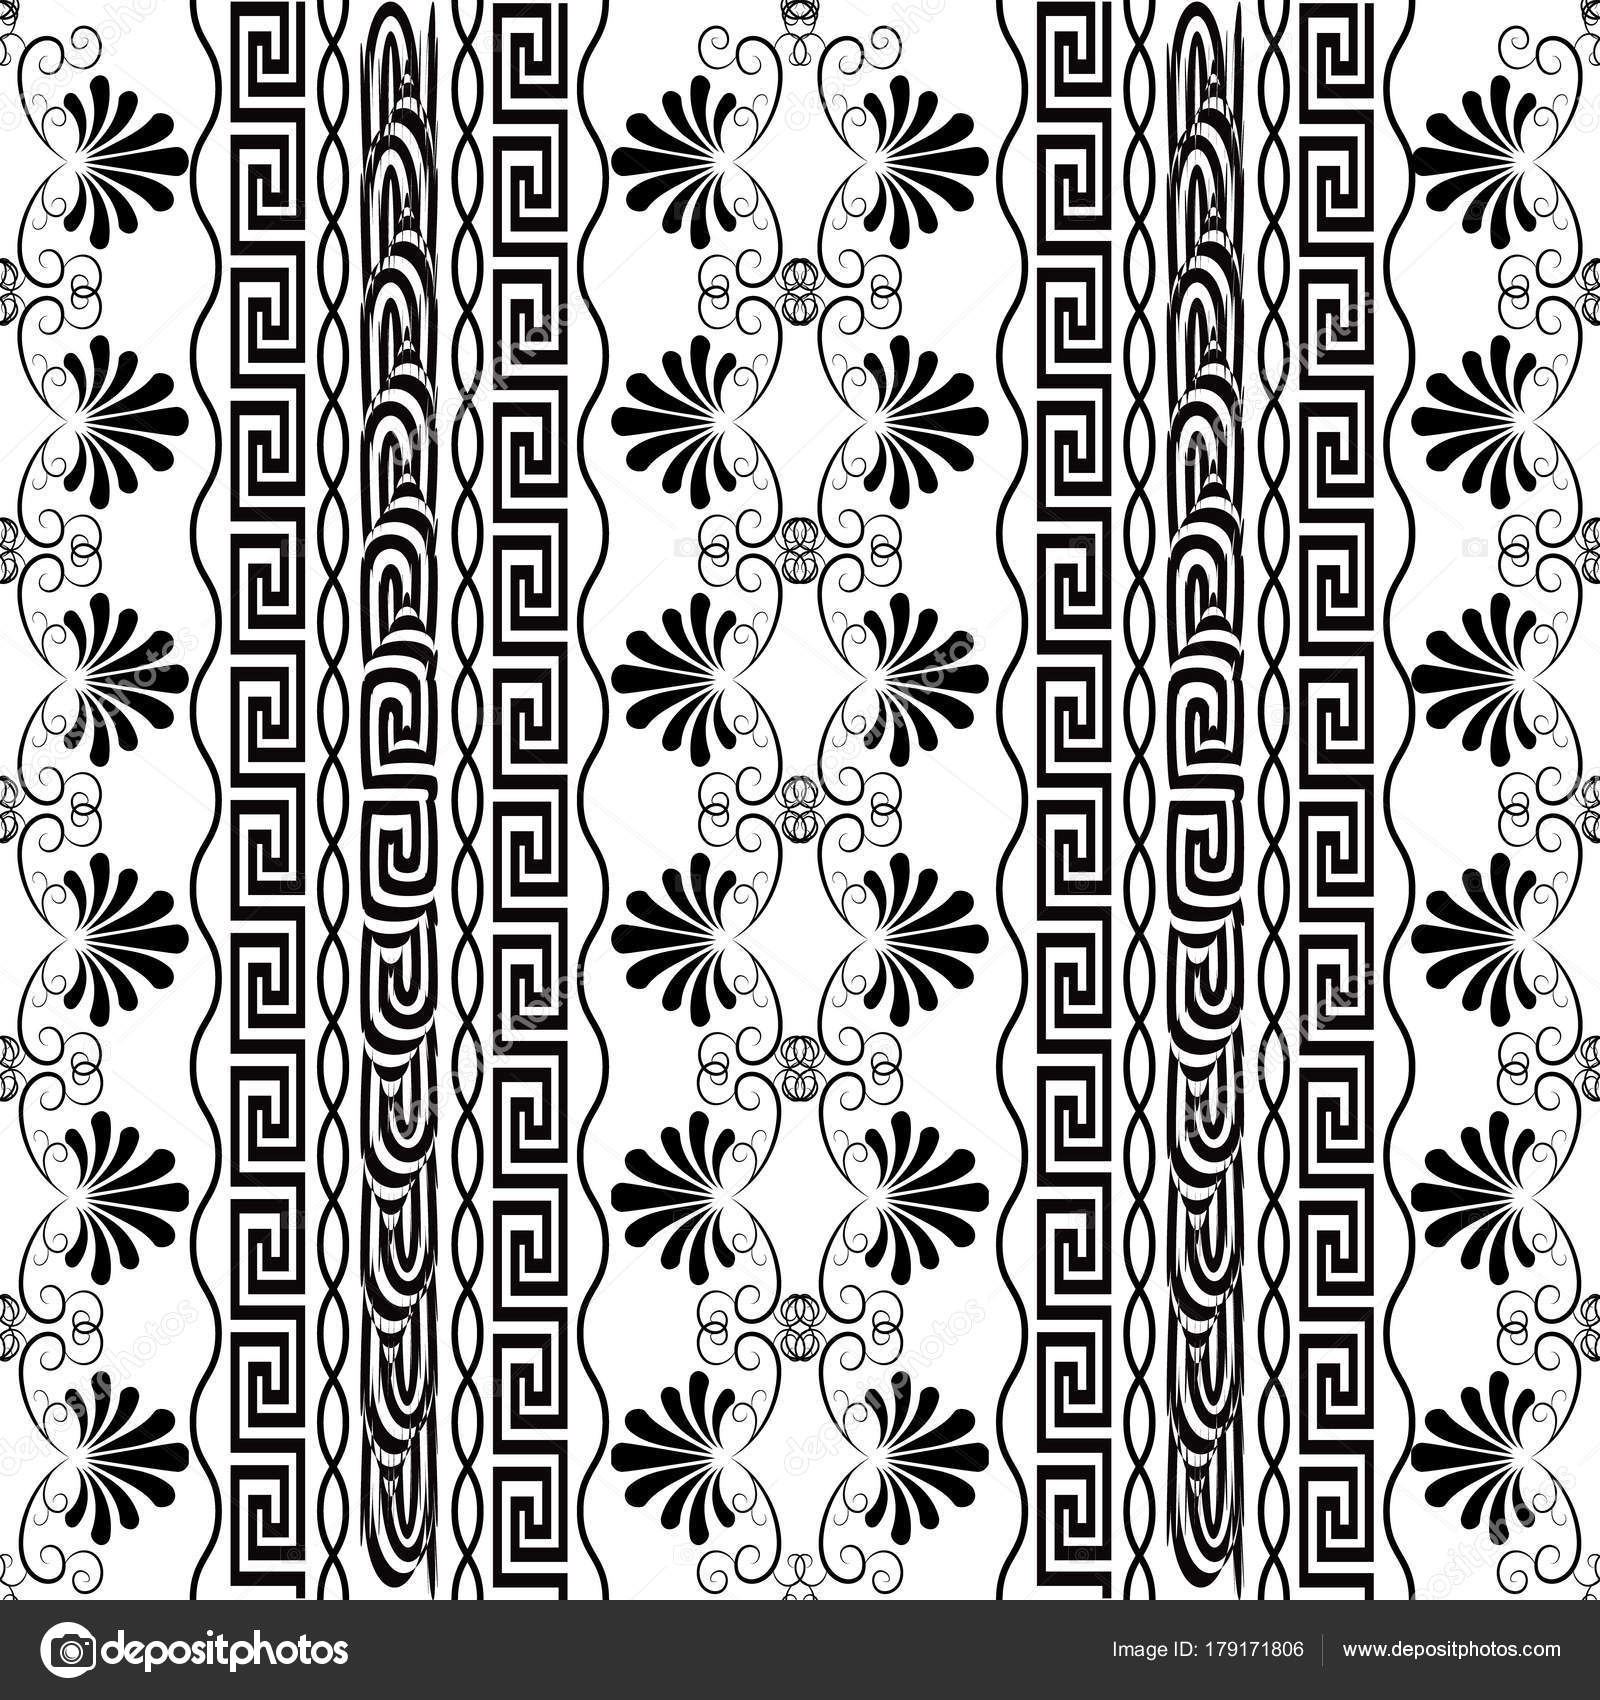 Striped Floral Seamless Border Pattern Isolated Design